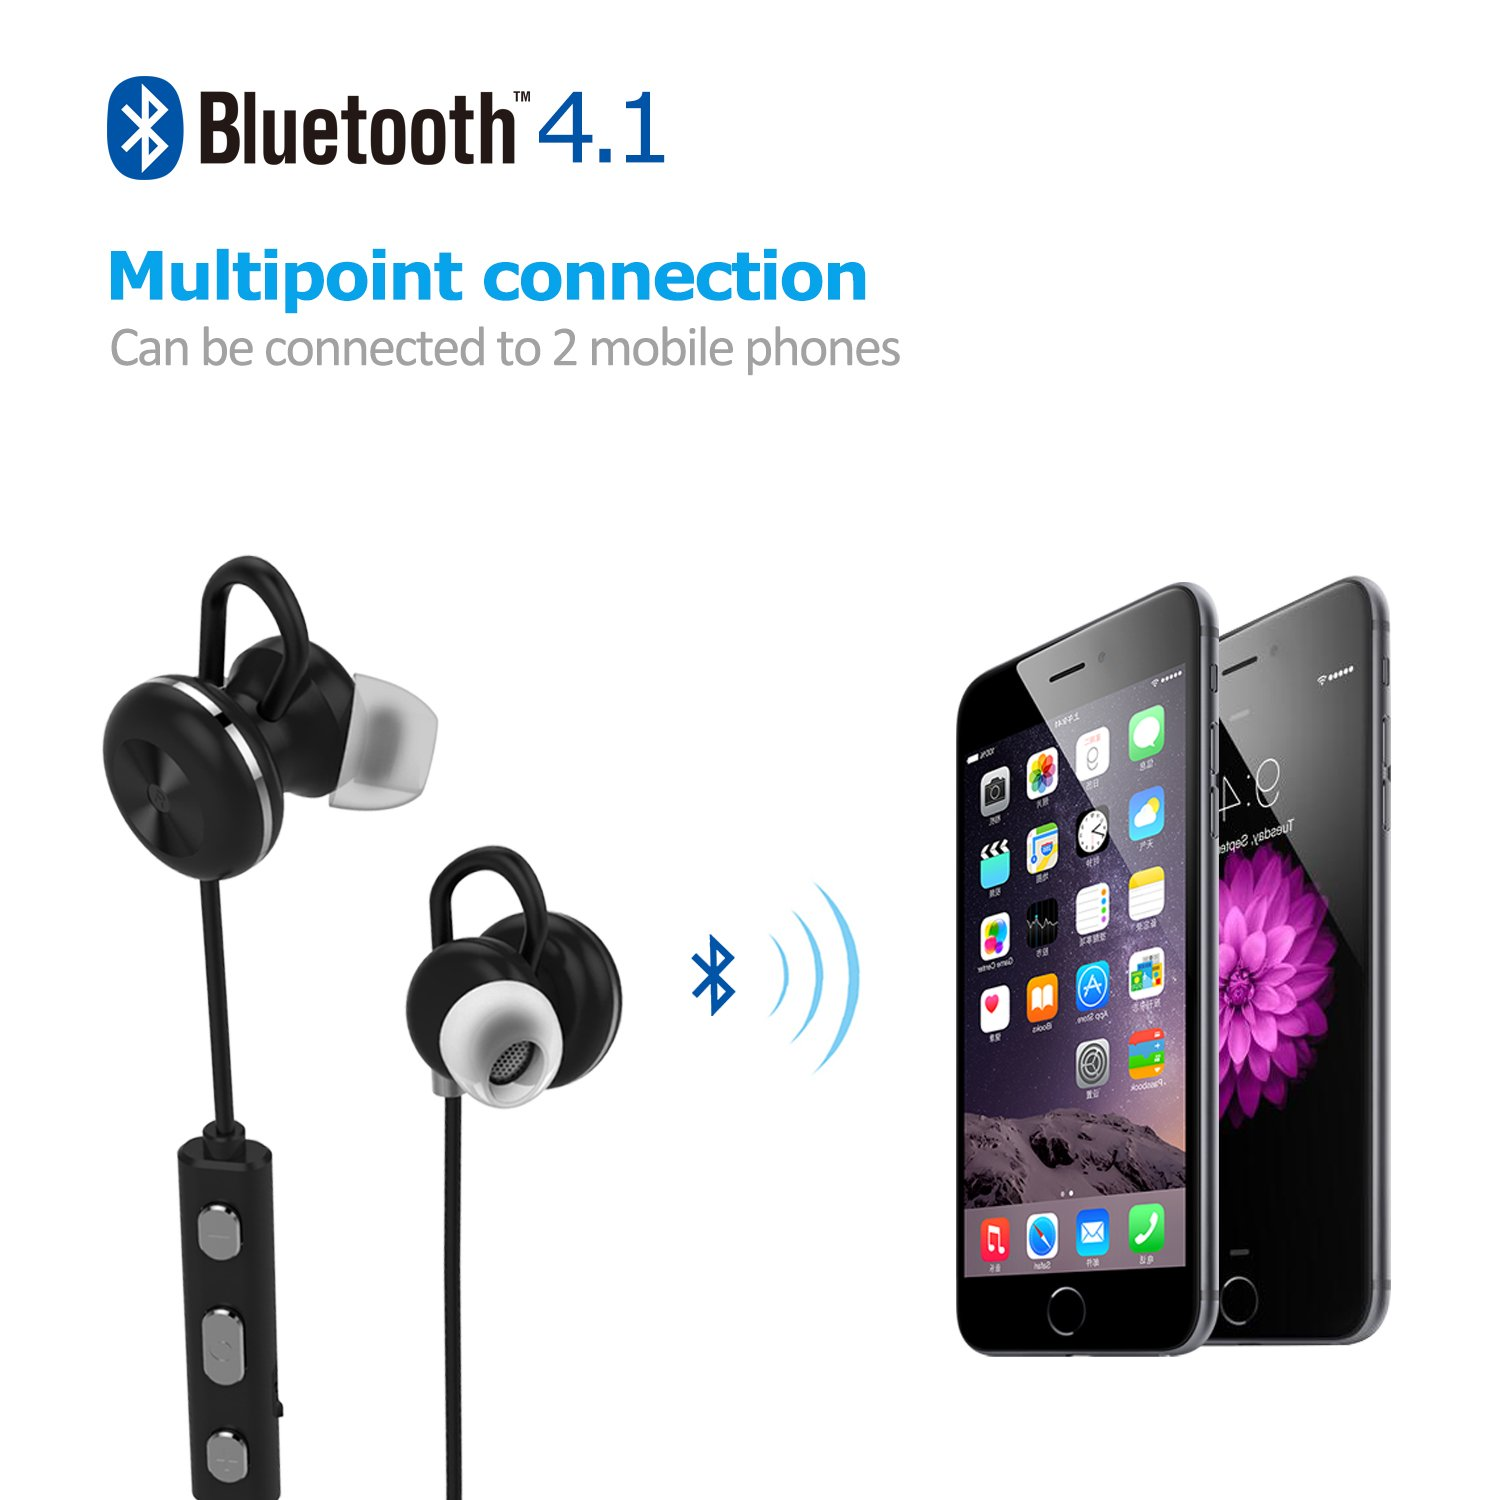 Bluetooth Headphones,Lobkin Bluetooth In Ear Headphones Wireless Earbuds Sports Magnetic Sweatproof Earphones Noise Cancelling Headsets with Mic, Black